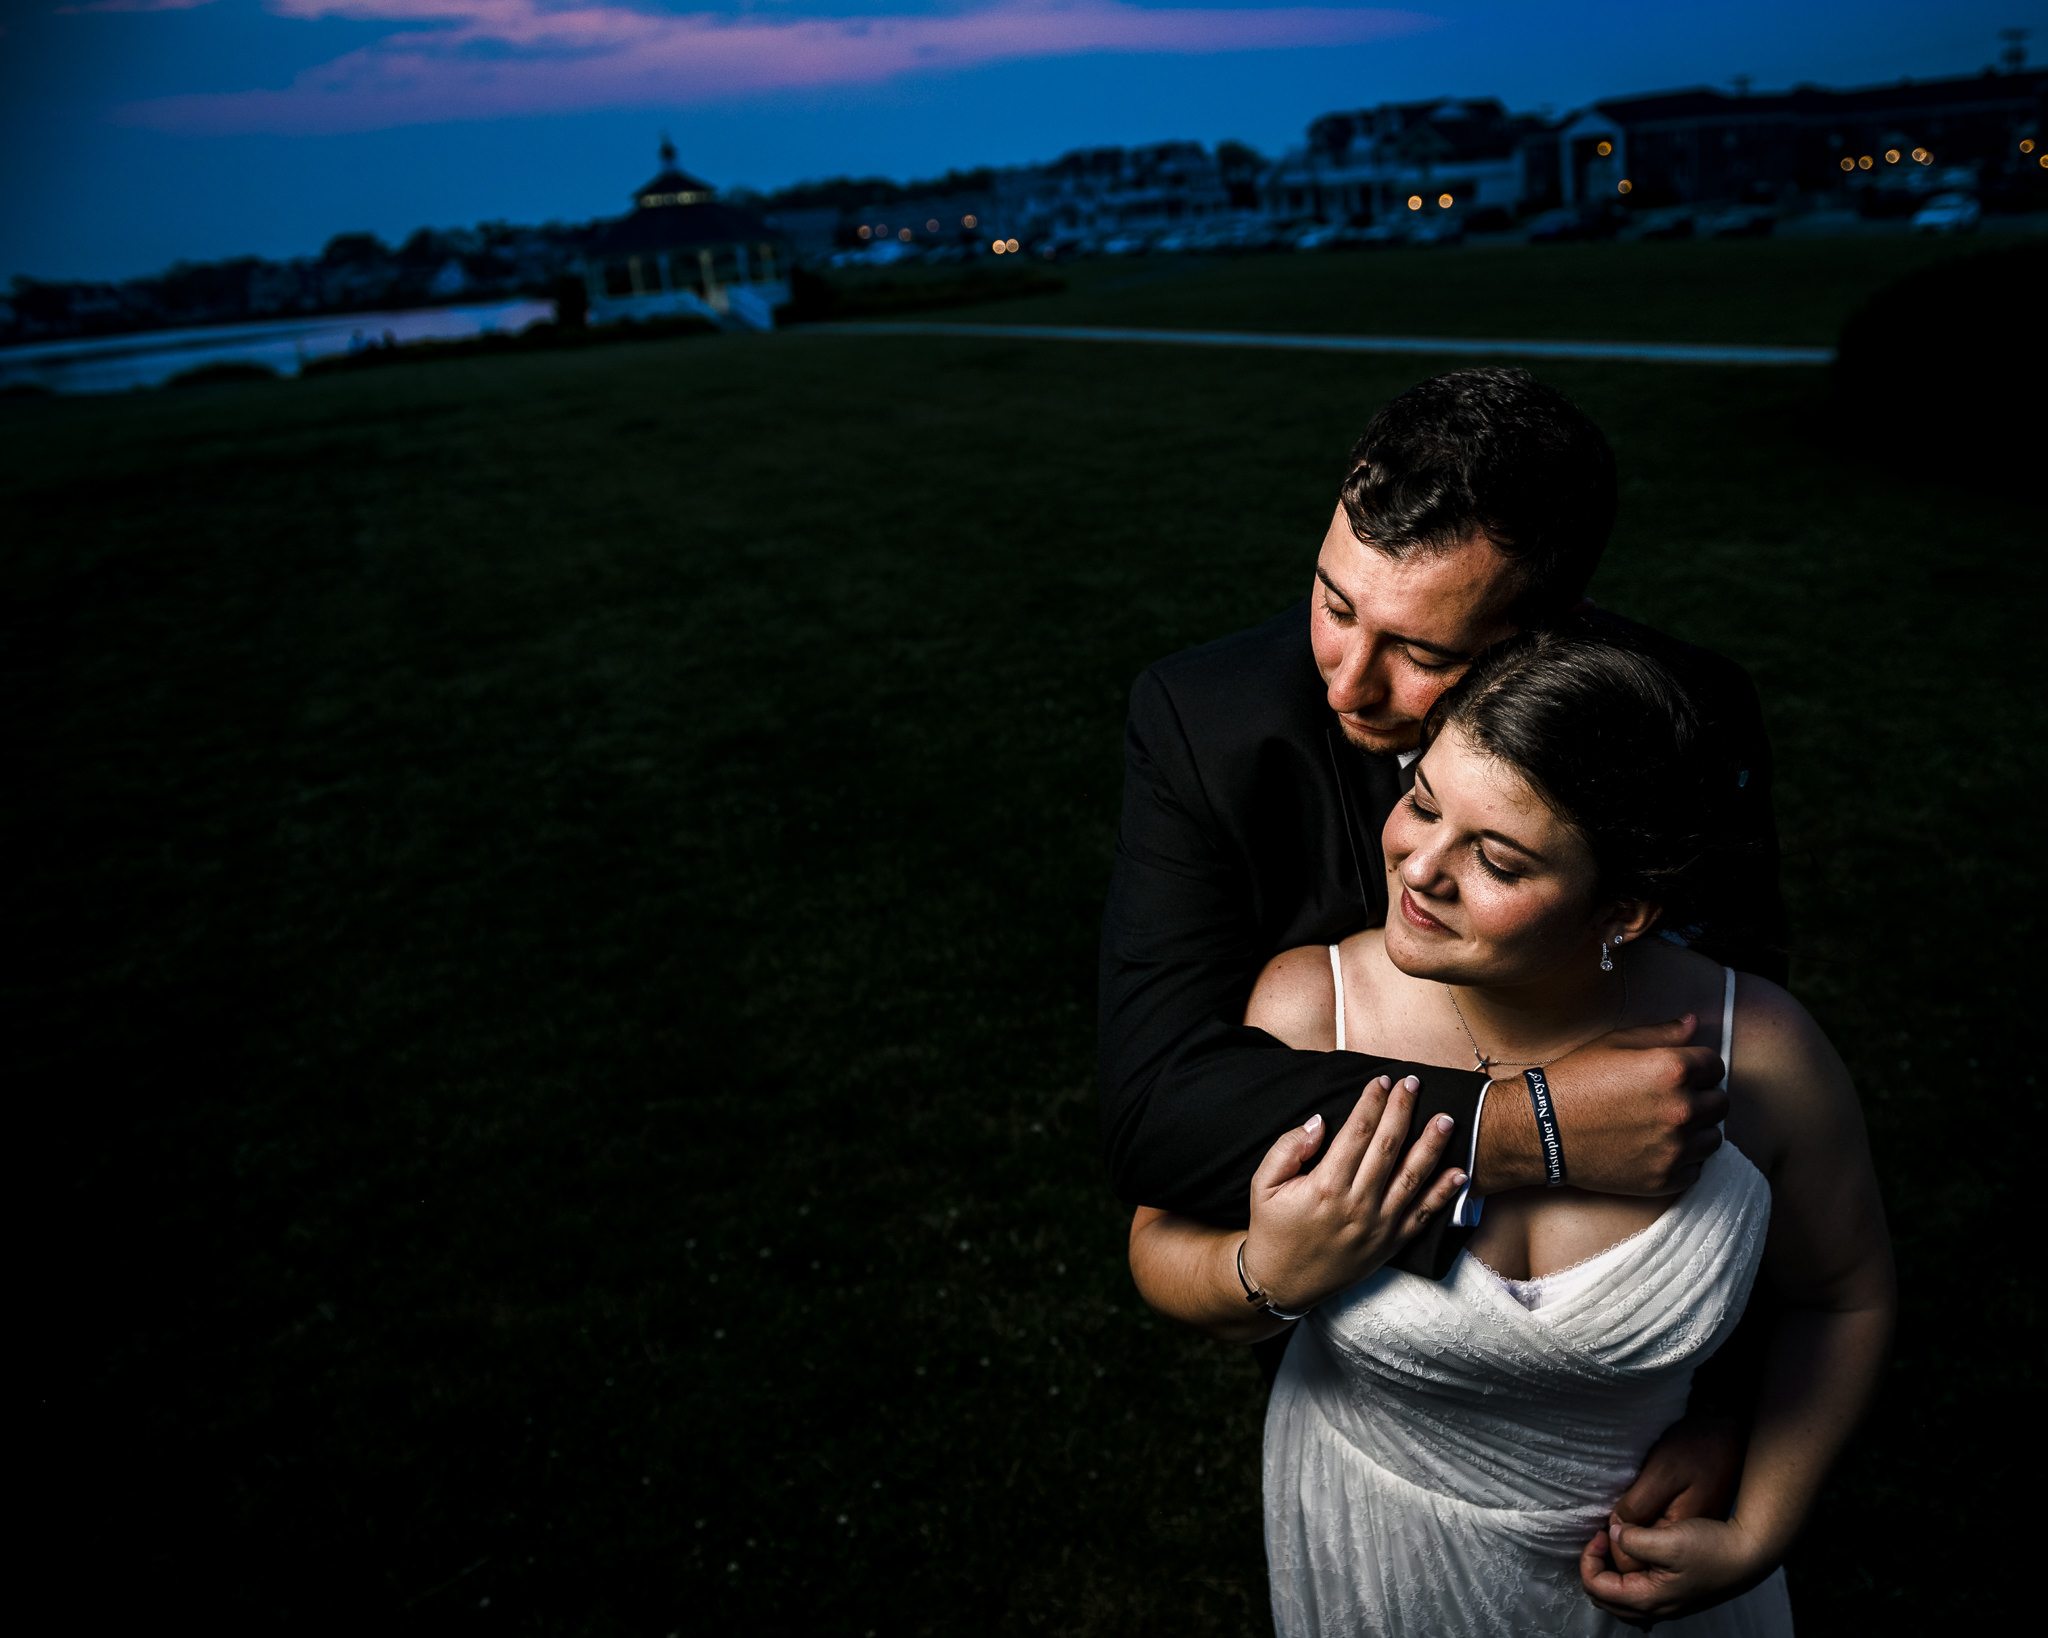 Tempsick-Taylor-Pavilion-New-Jersey-Wedding-Photographer-46.JPG